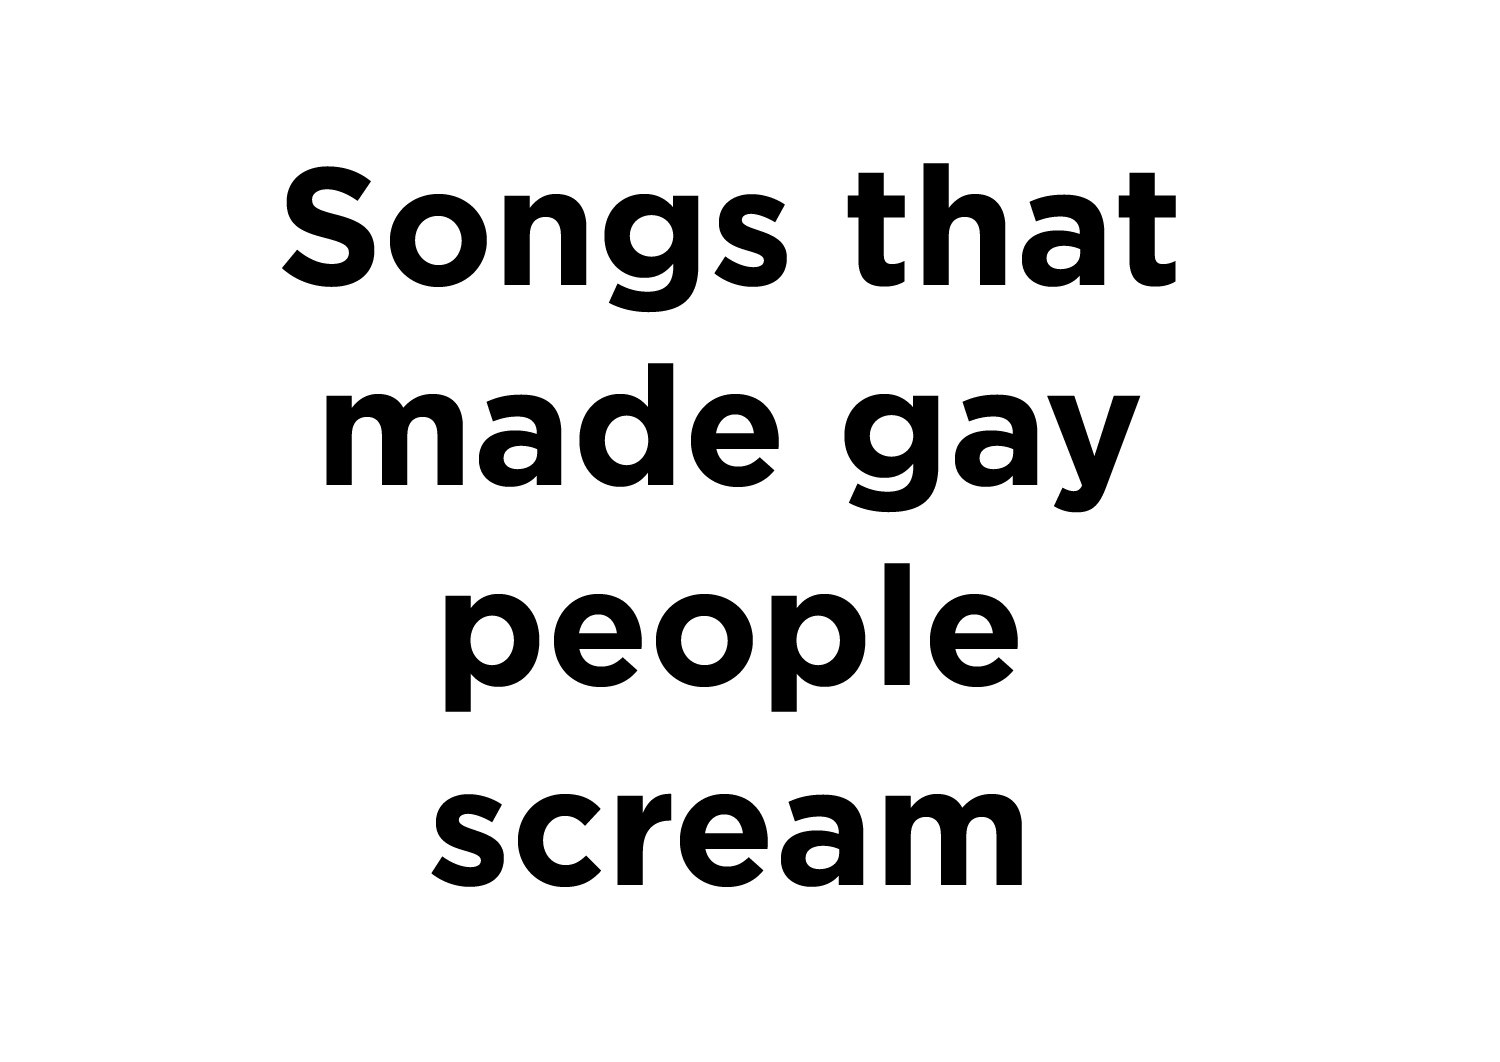 on most homosexual earth song